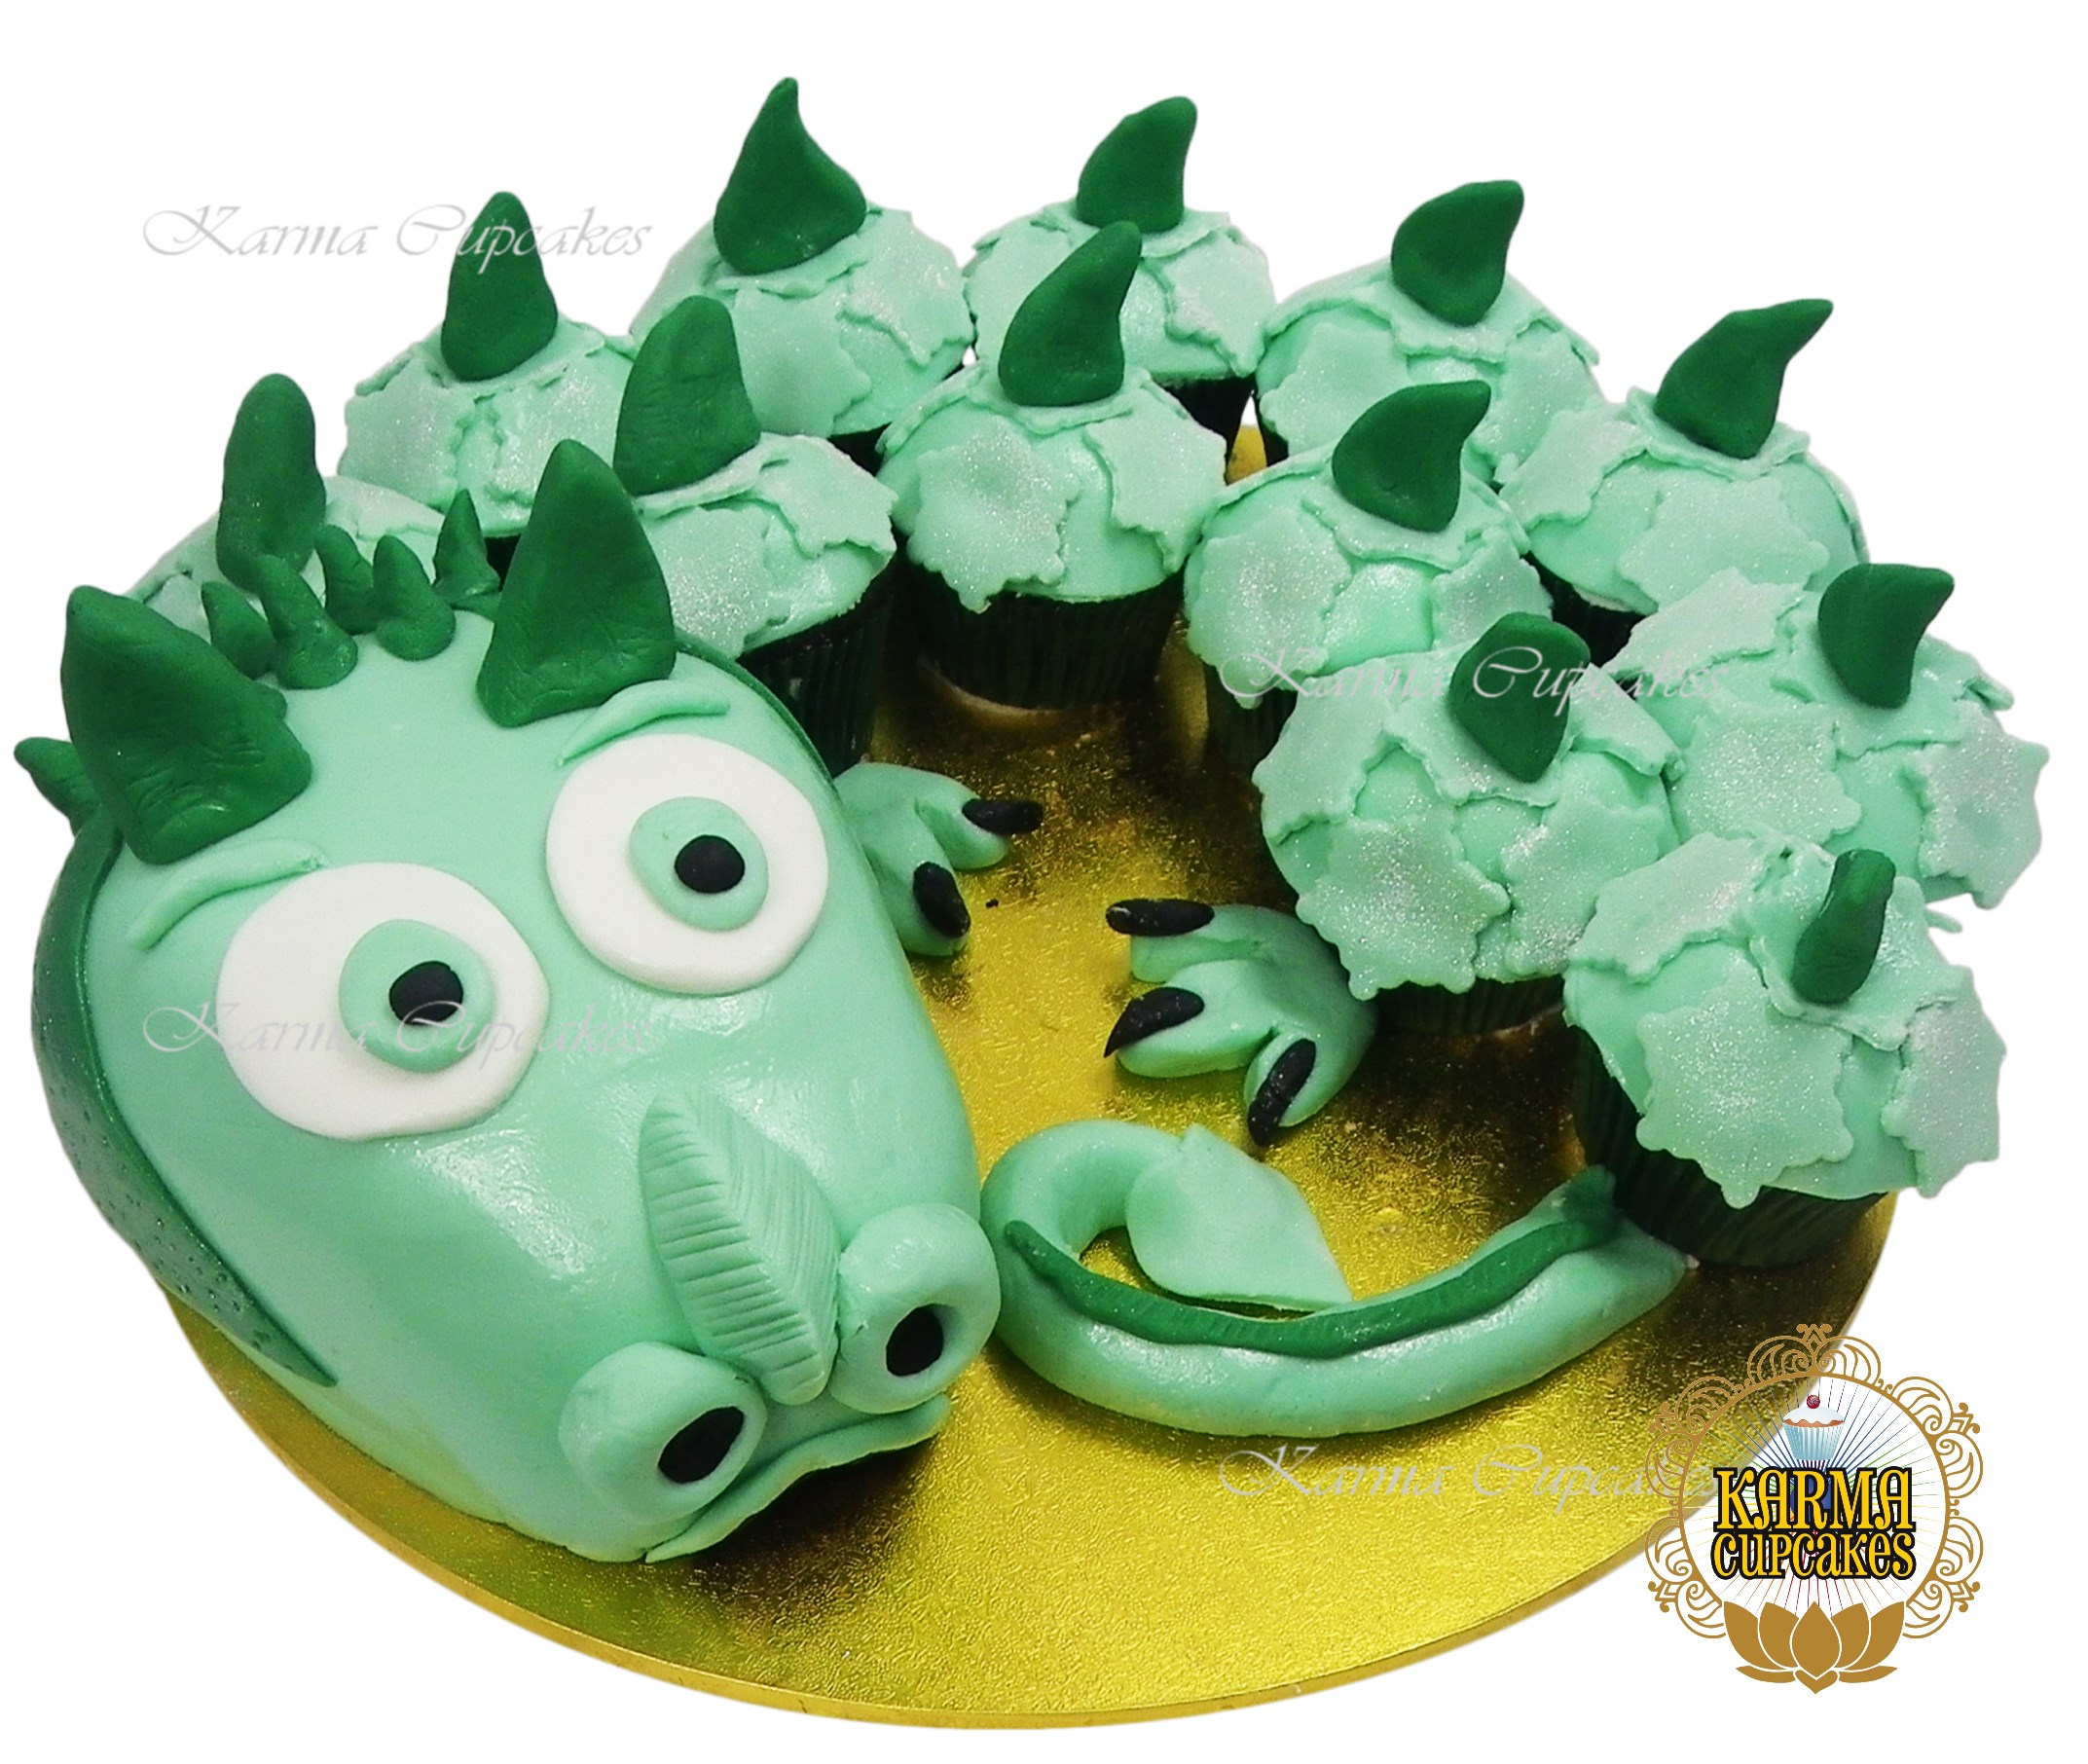 Dragon Cake with cupcakes